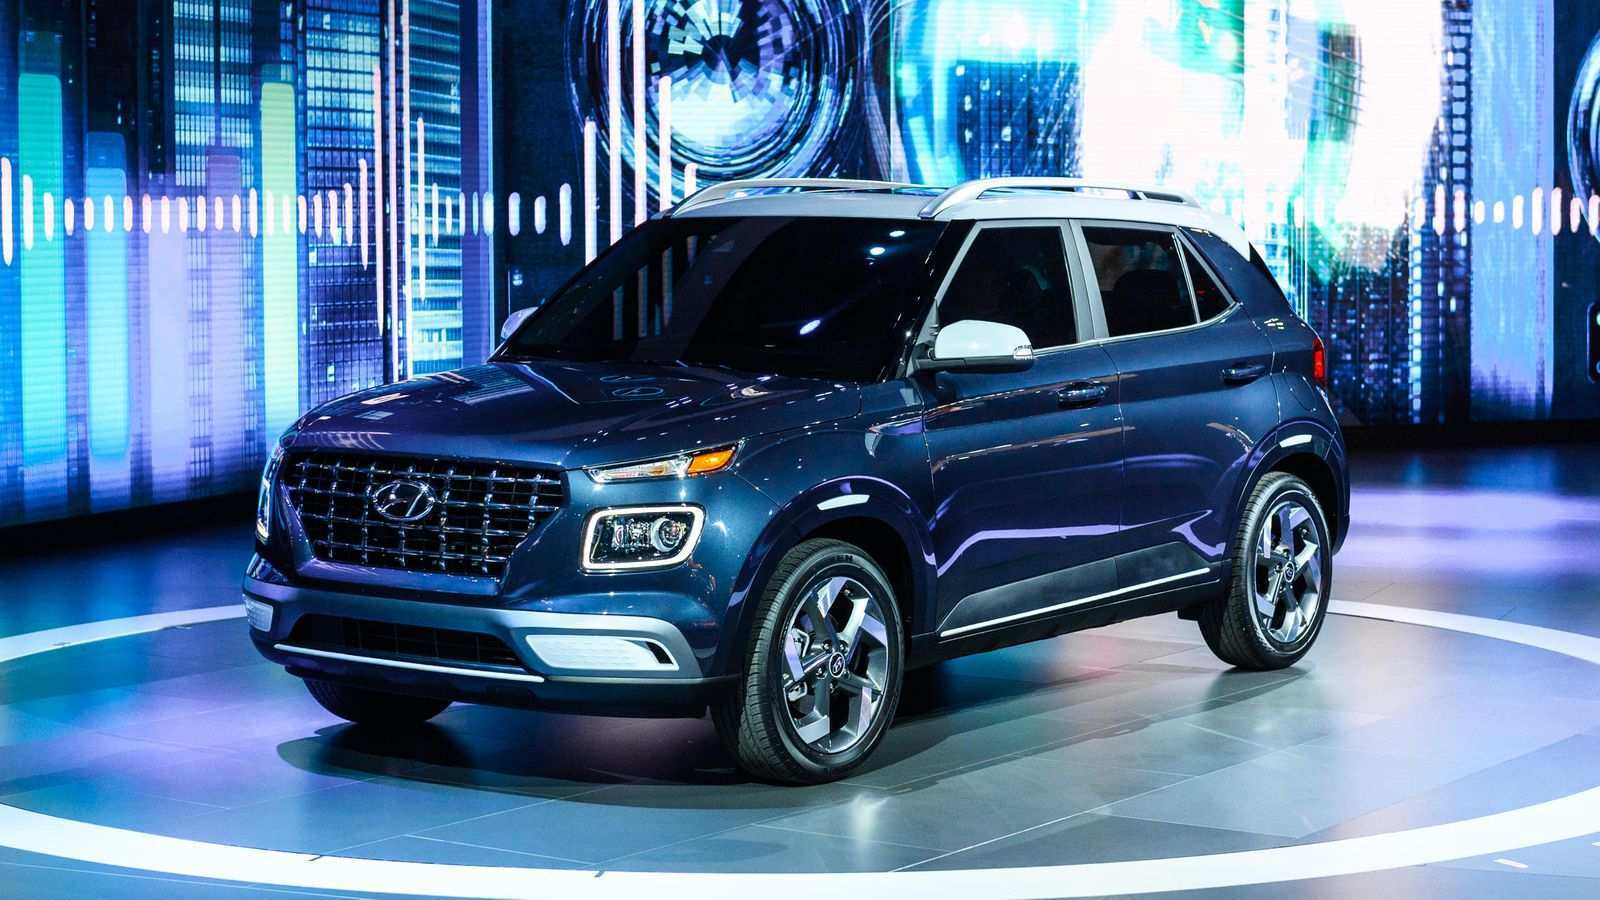 88 Gallery of When Do 2020 Hyundai Cars Come Out Price and Review for When Do 2020 Hyundai Cars Come Out